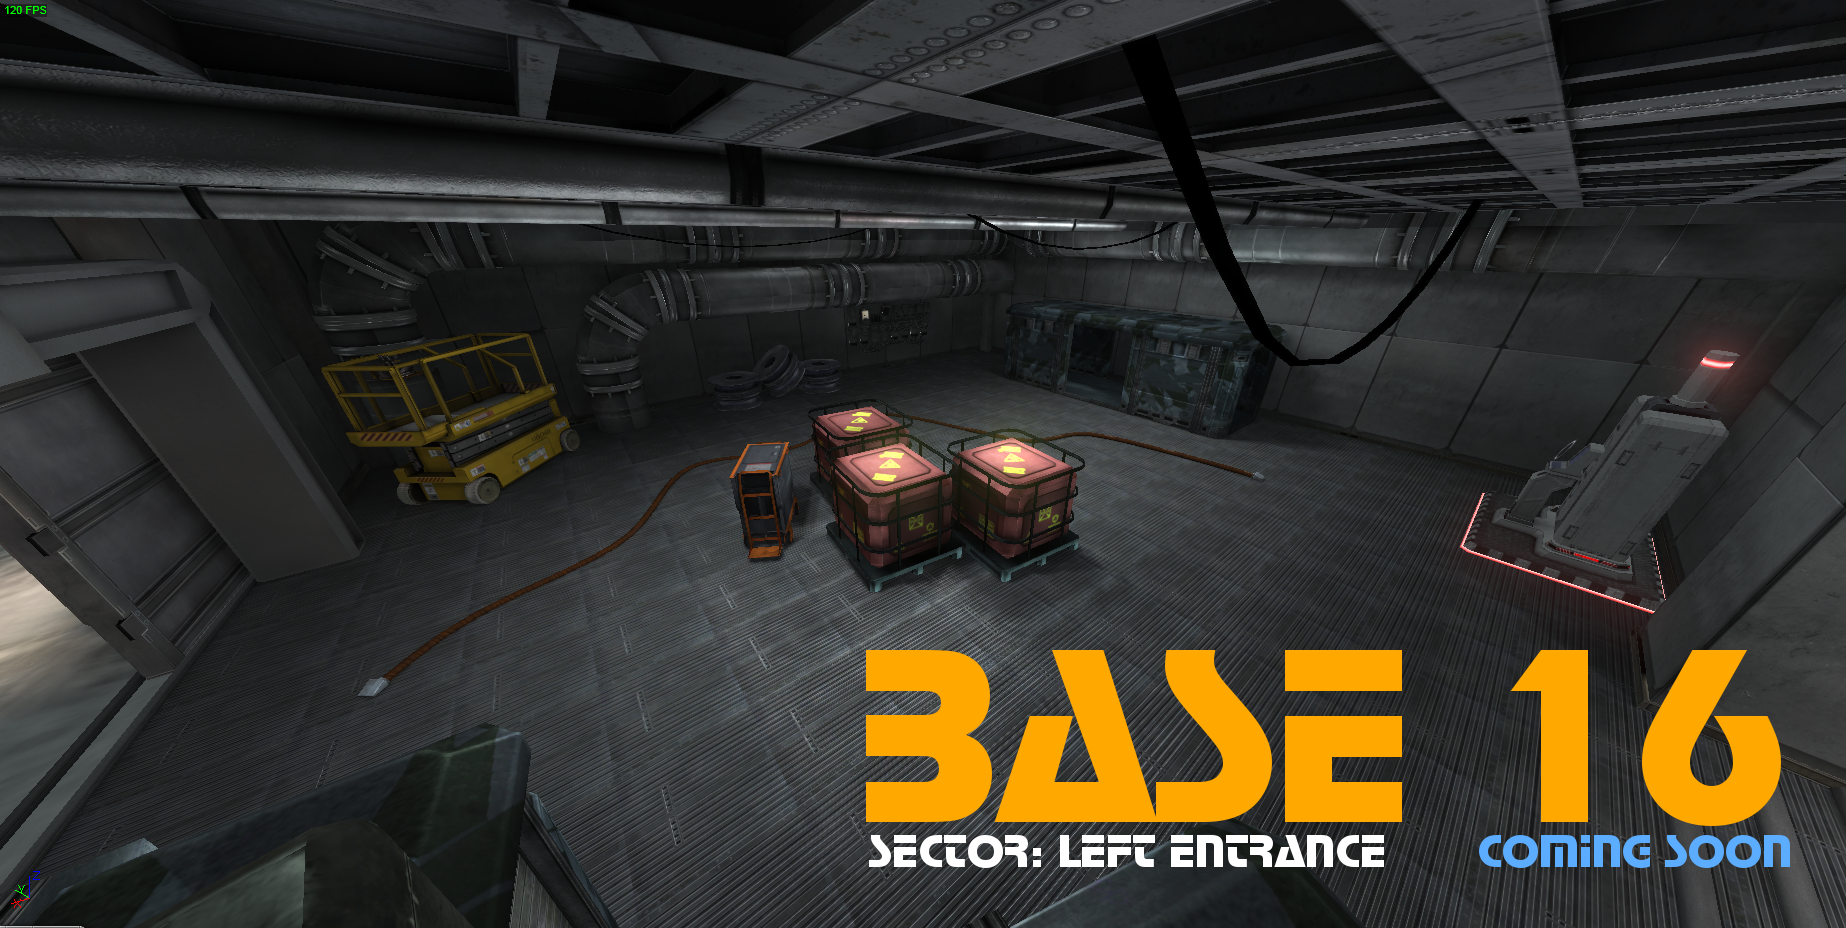 Base 16 | Sector : Left entrance | coming soon